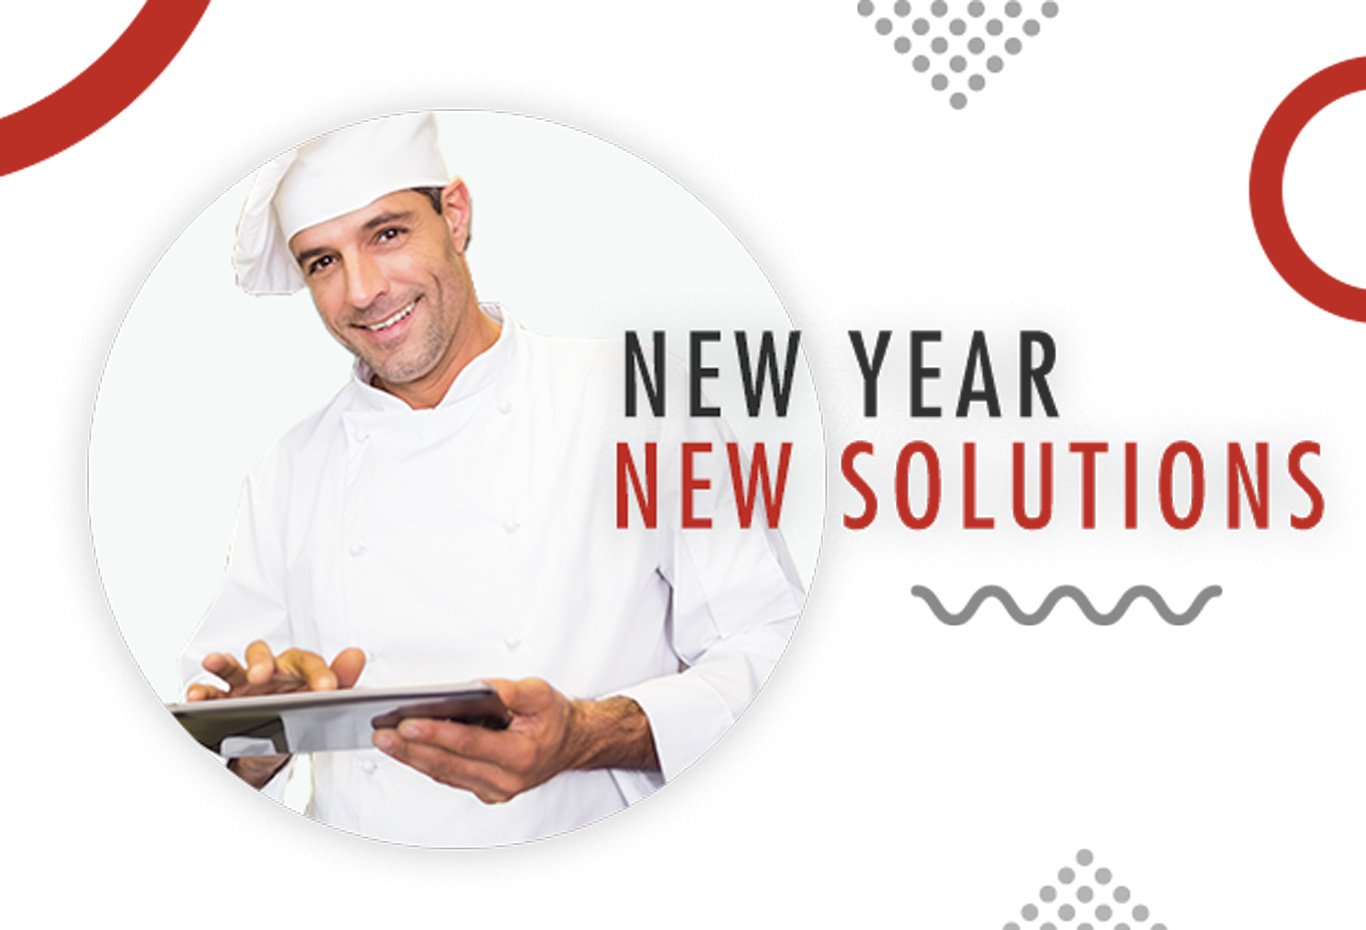 Banner, New Year. New Solutions, male chef smiling with tablet